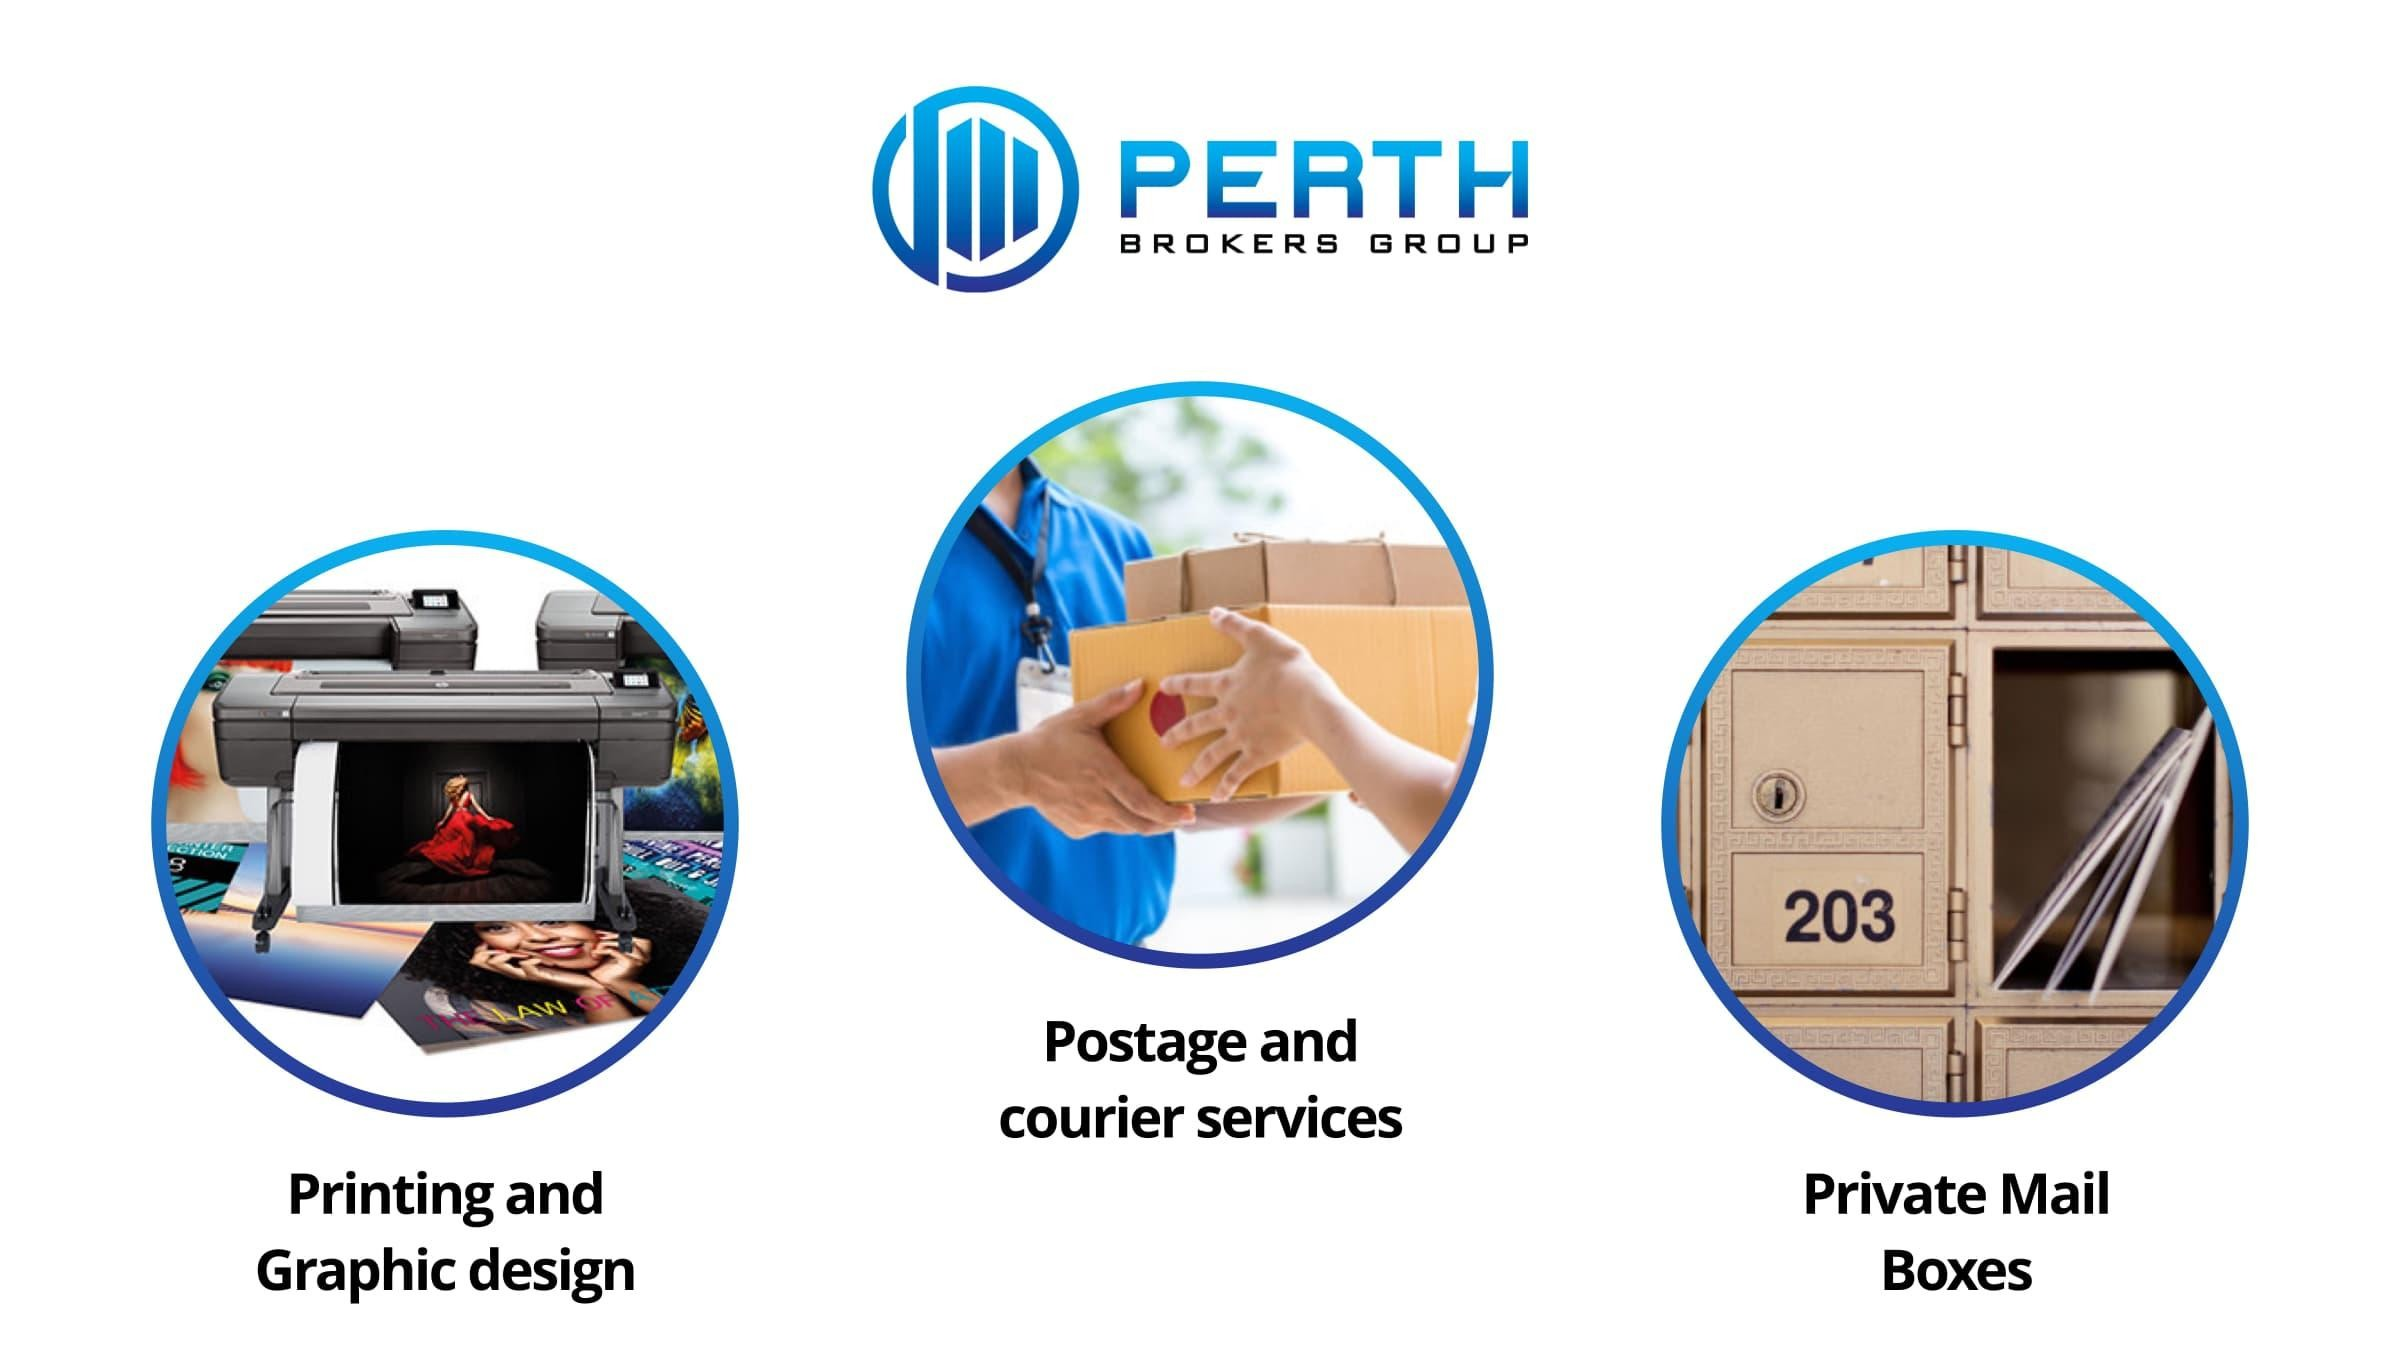 Postbox / Printing / Courier & Shipping - Established Profitable business in Perth CBD (PBG)